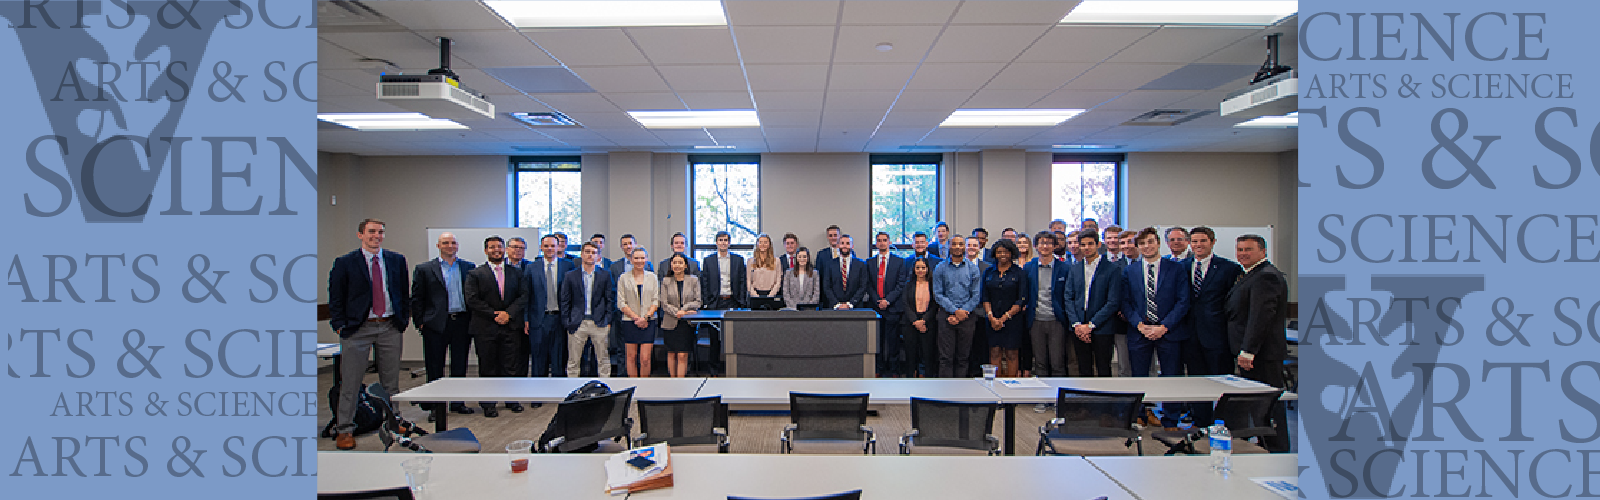 Business minor program gives students opportunity to manage $500K of $12M portfolio